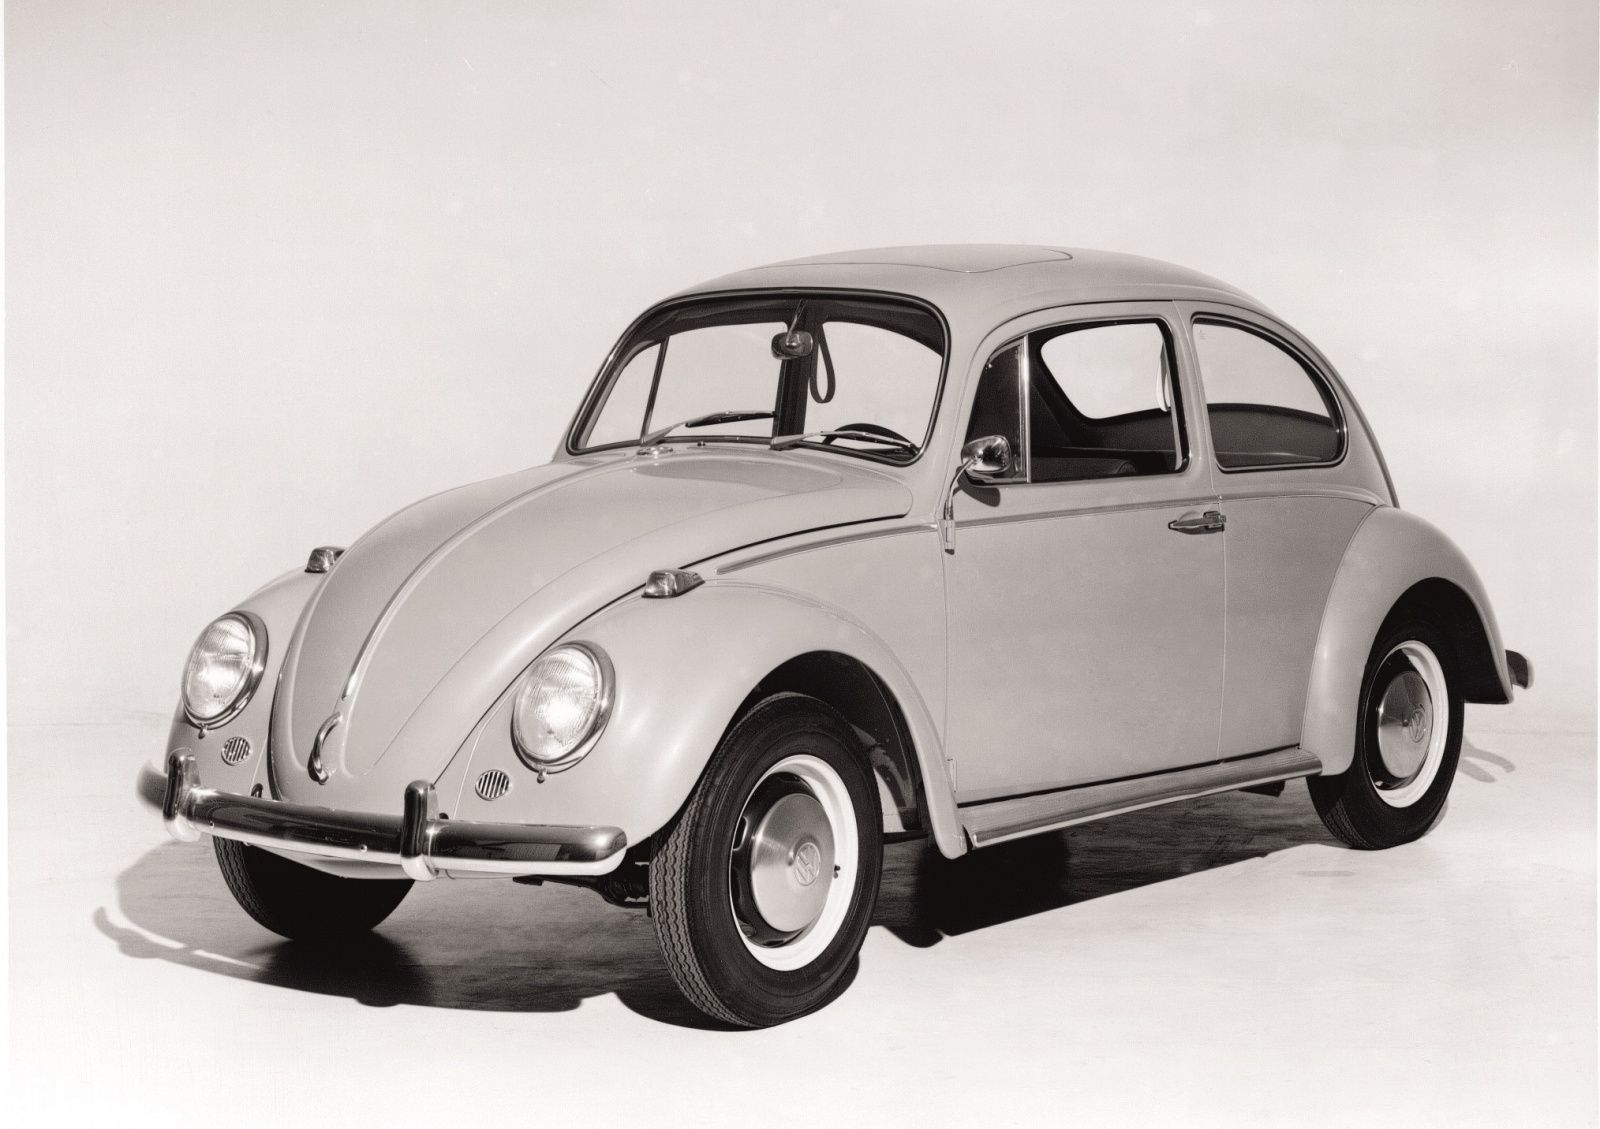 Design of beetle car - Cars I Have Owned 2rd Car In The Us 3rd Total Vw 1965